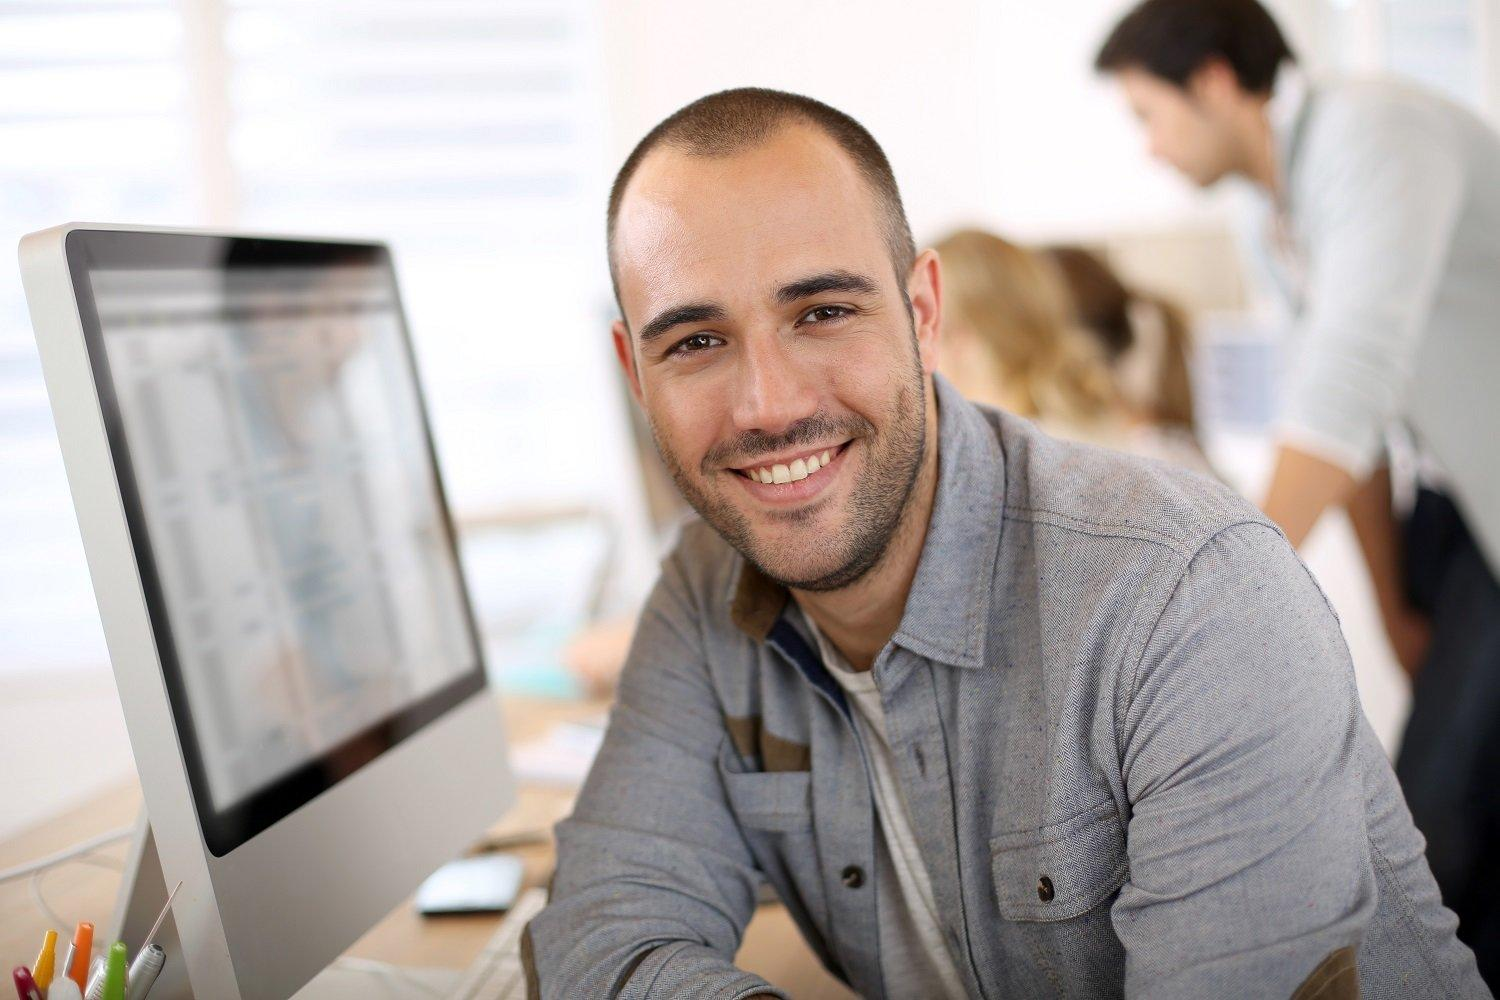 man behind computer smiling